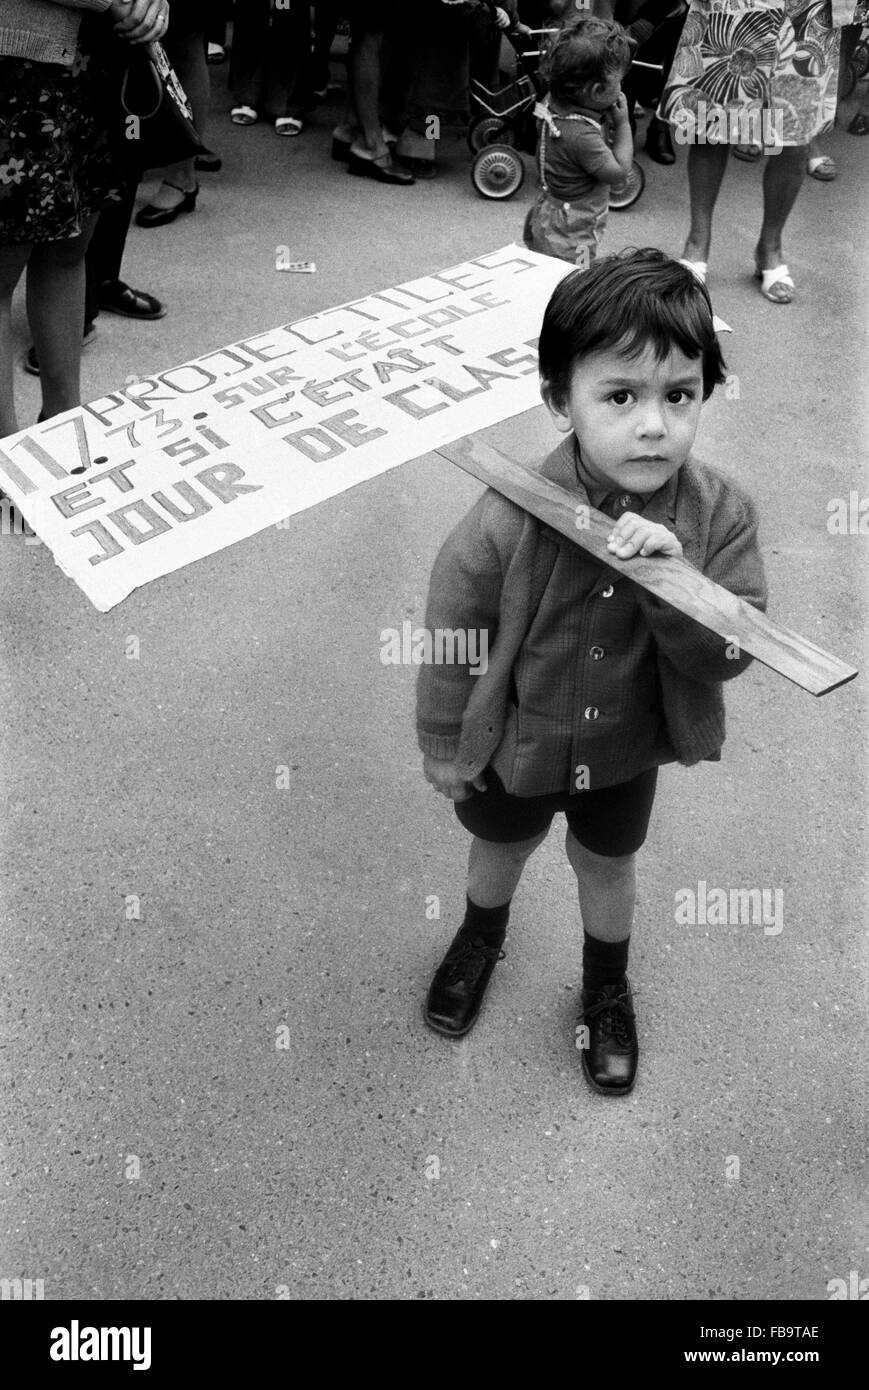 1968 events. -  France / Ile-de-France (region)  -  1968 events. -  Young boy with a placard during 1968 riots and - Stock Image